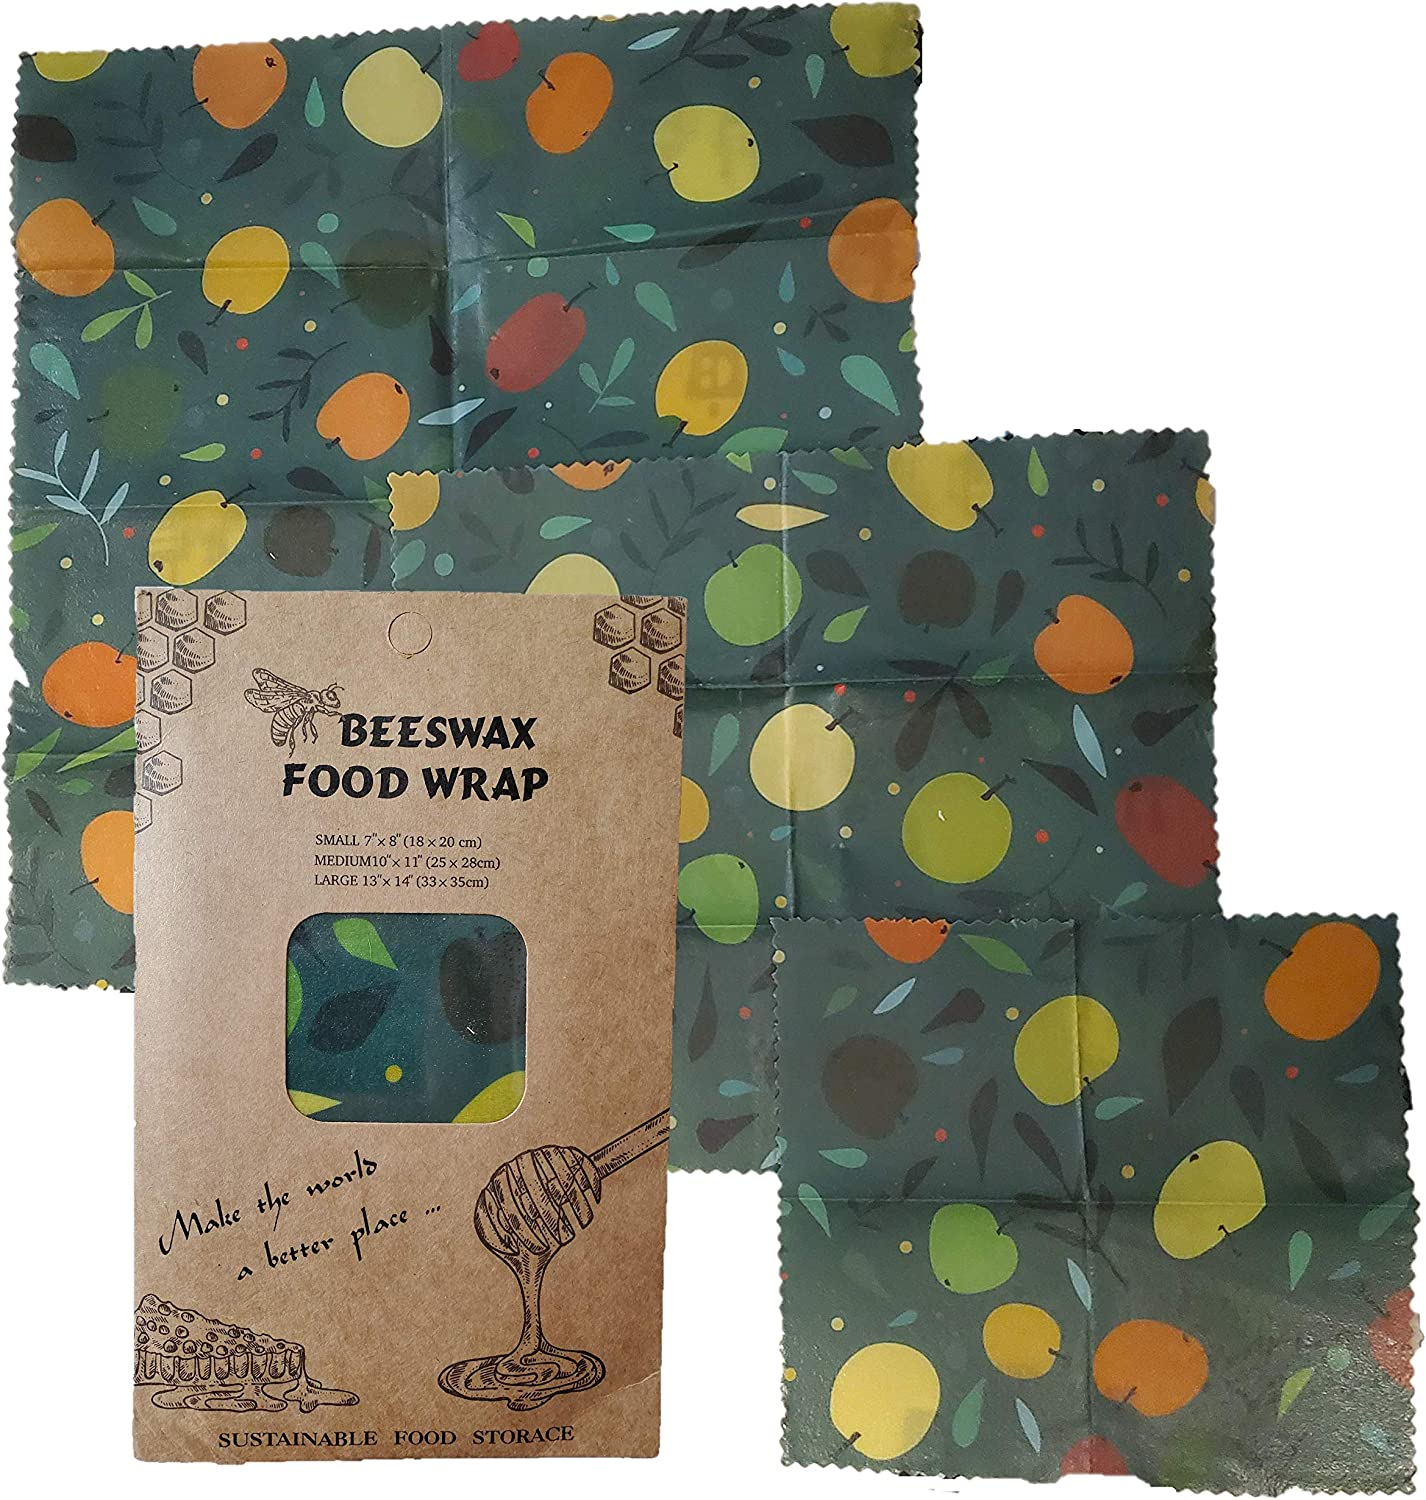 Organic Reusable Beeswax Food Wrap Variety Pack Food Storage, Compostable and Eco-Friendly Plastic Wrap Alternative, Sustainable Beeswrap with Organic Cotton and Jojoba Oil, (Green)